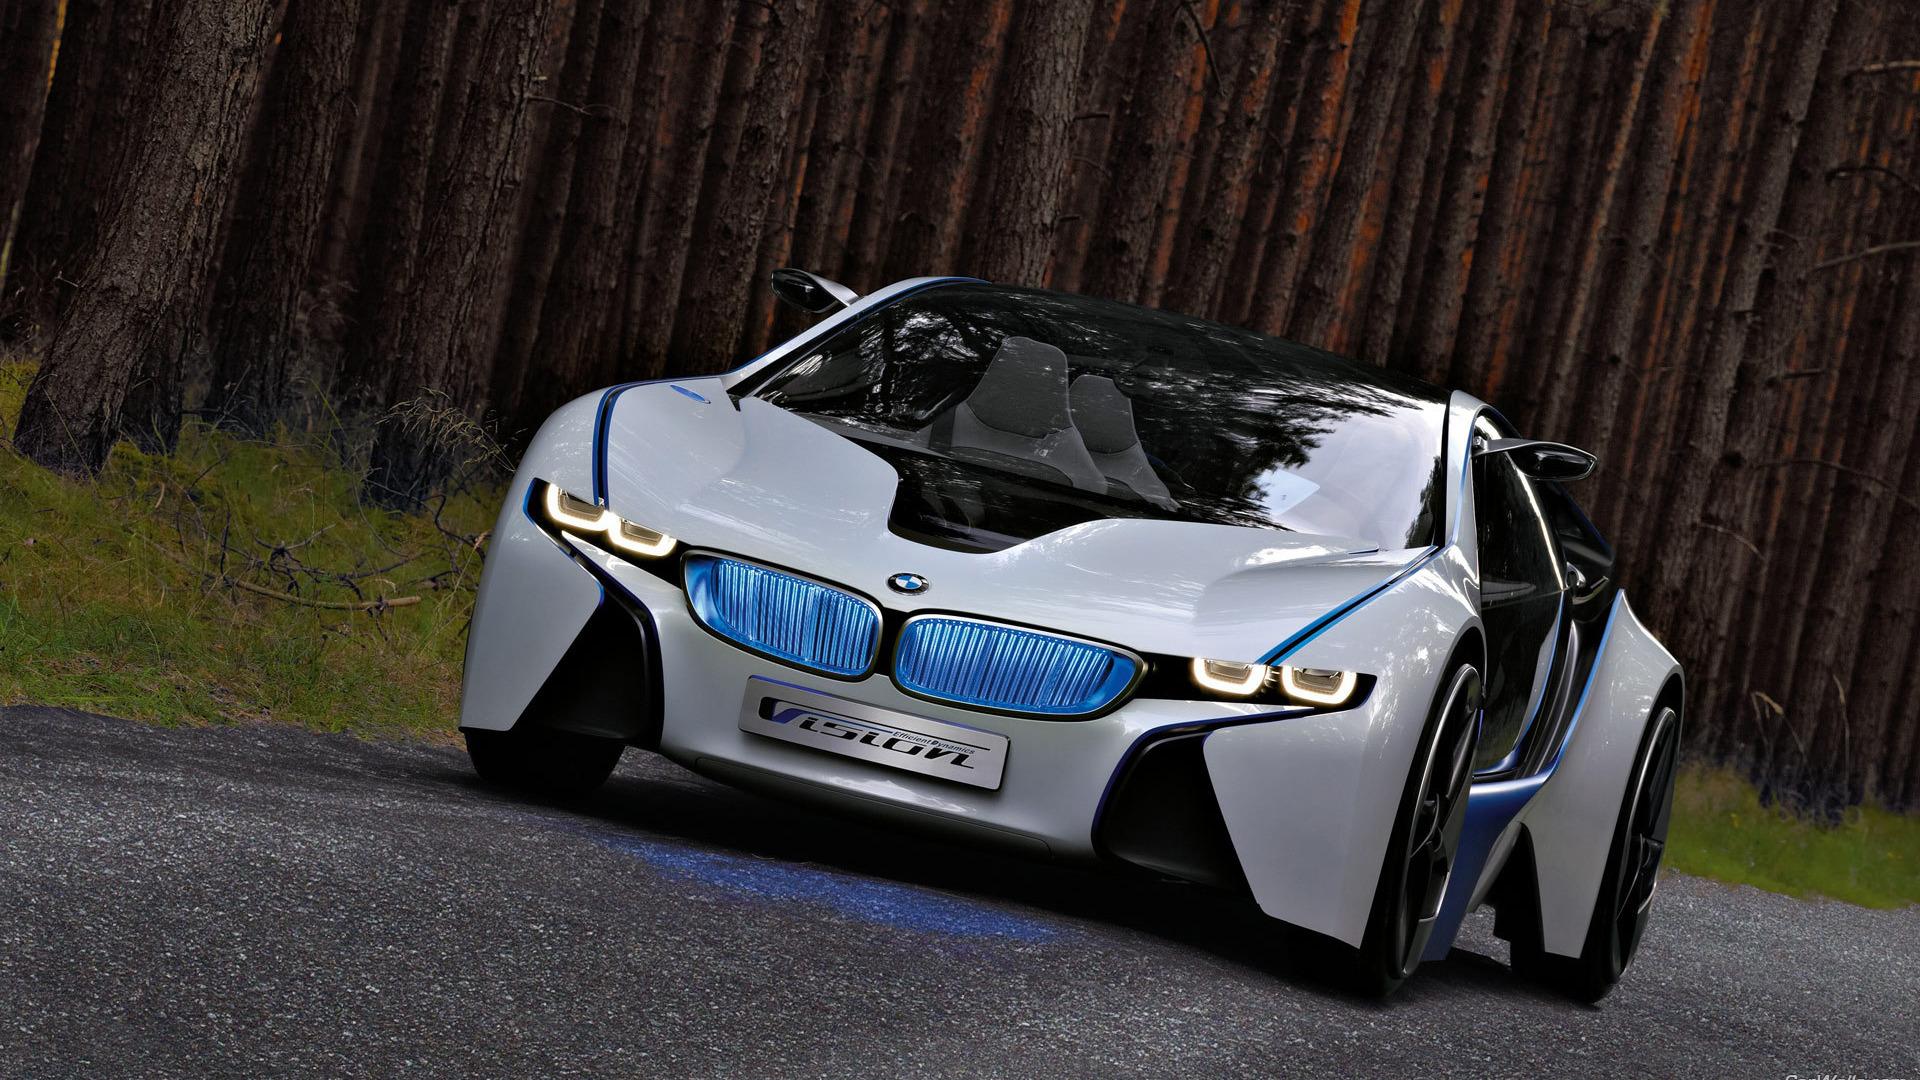 Free Download Bmw Car 1920x1080 Pixels Full Hd Wallpapers Collection Tech Bug 1920x1080 For Your Desktop Mobile Tablet Explore 48 Full Hd Car Wallpapers 1920x1080 Car Wallpapers 1920x1080 Bmw